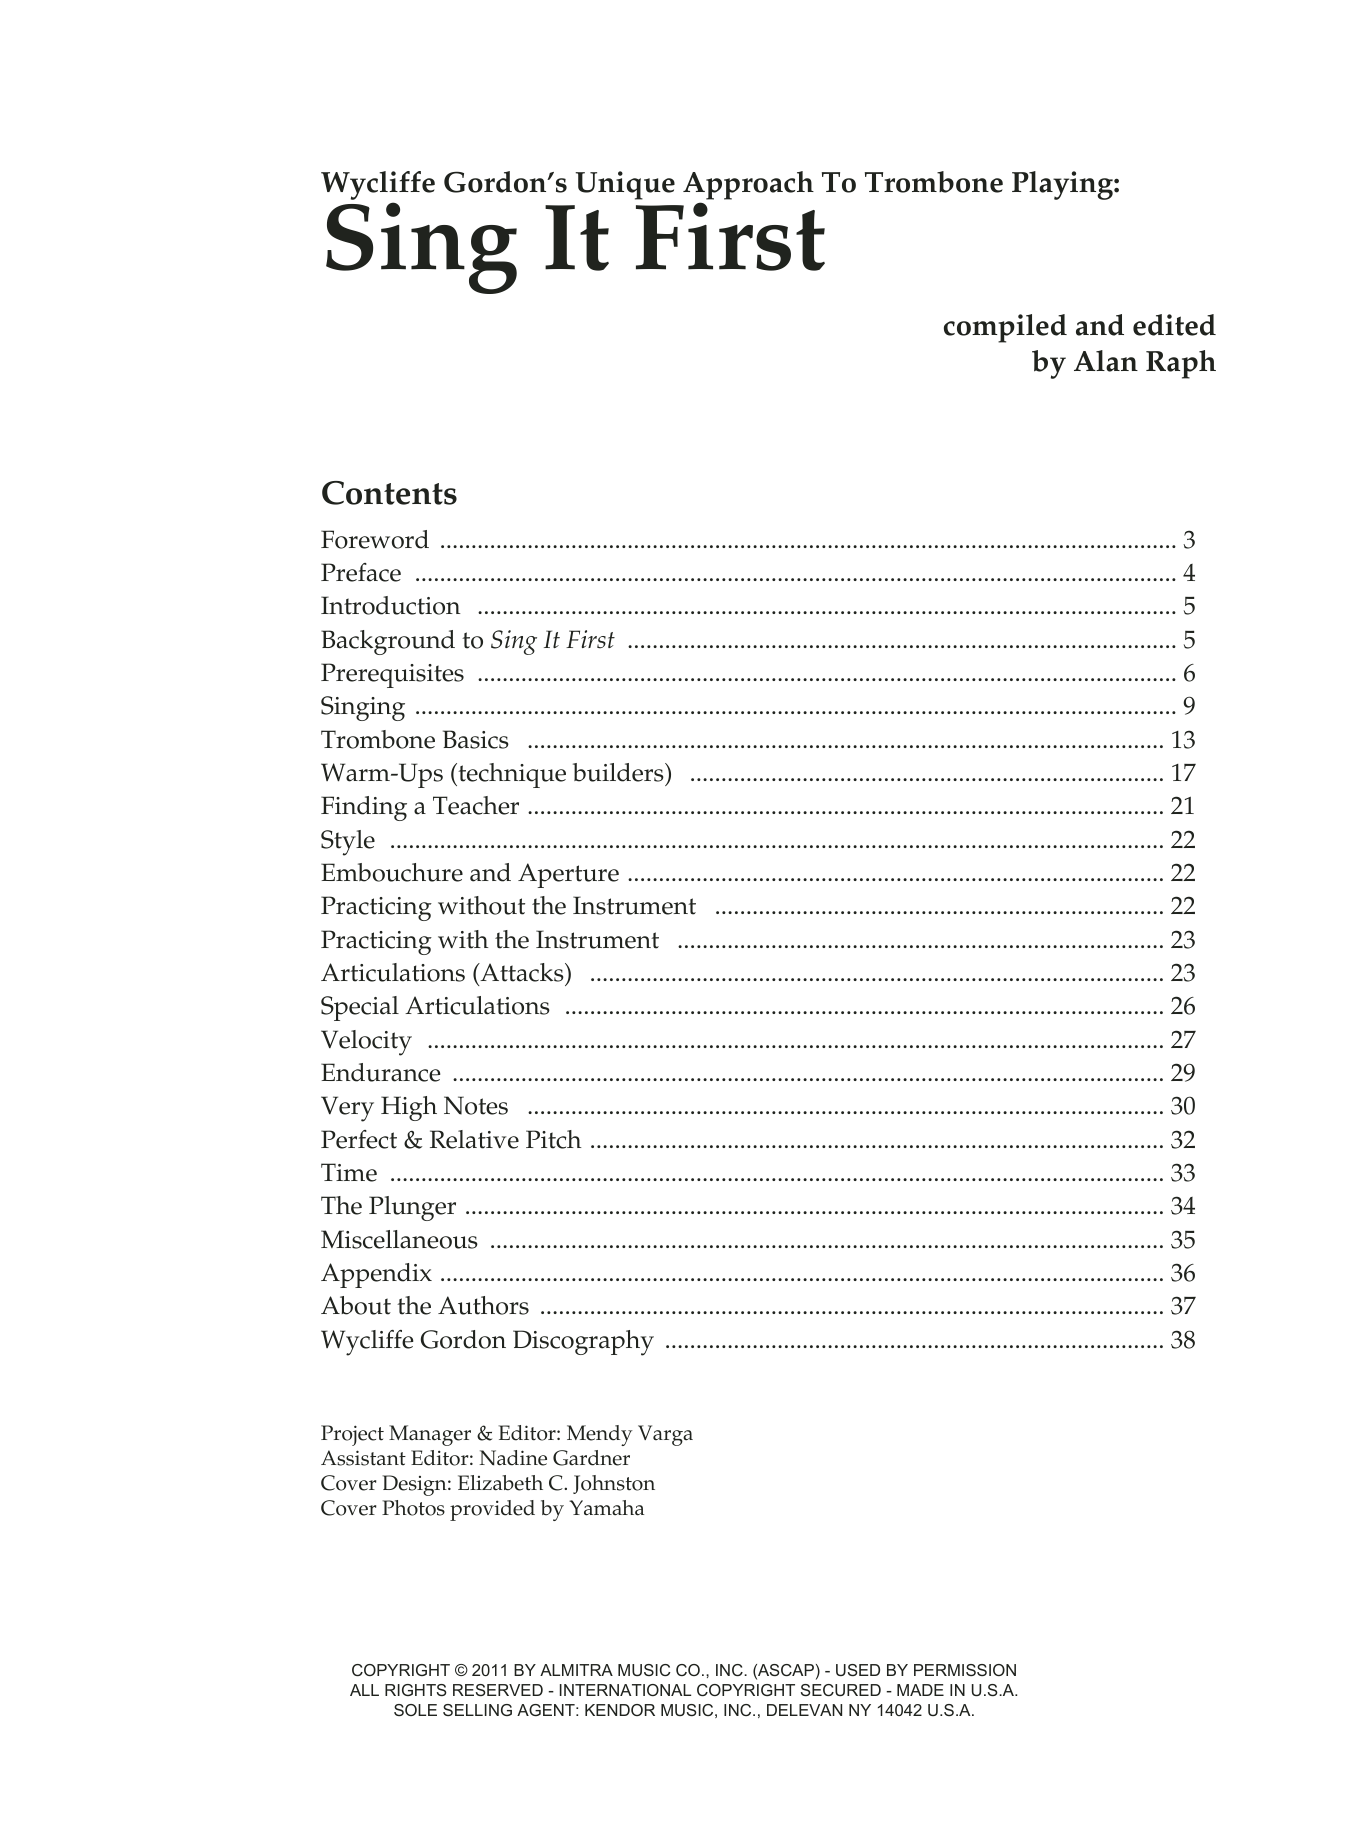 Sing It First (Wycliffe Gordon's Unique Approach To Trombone Playing) Sheet Music